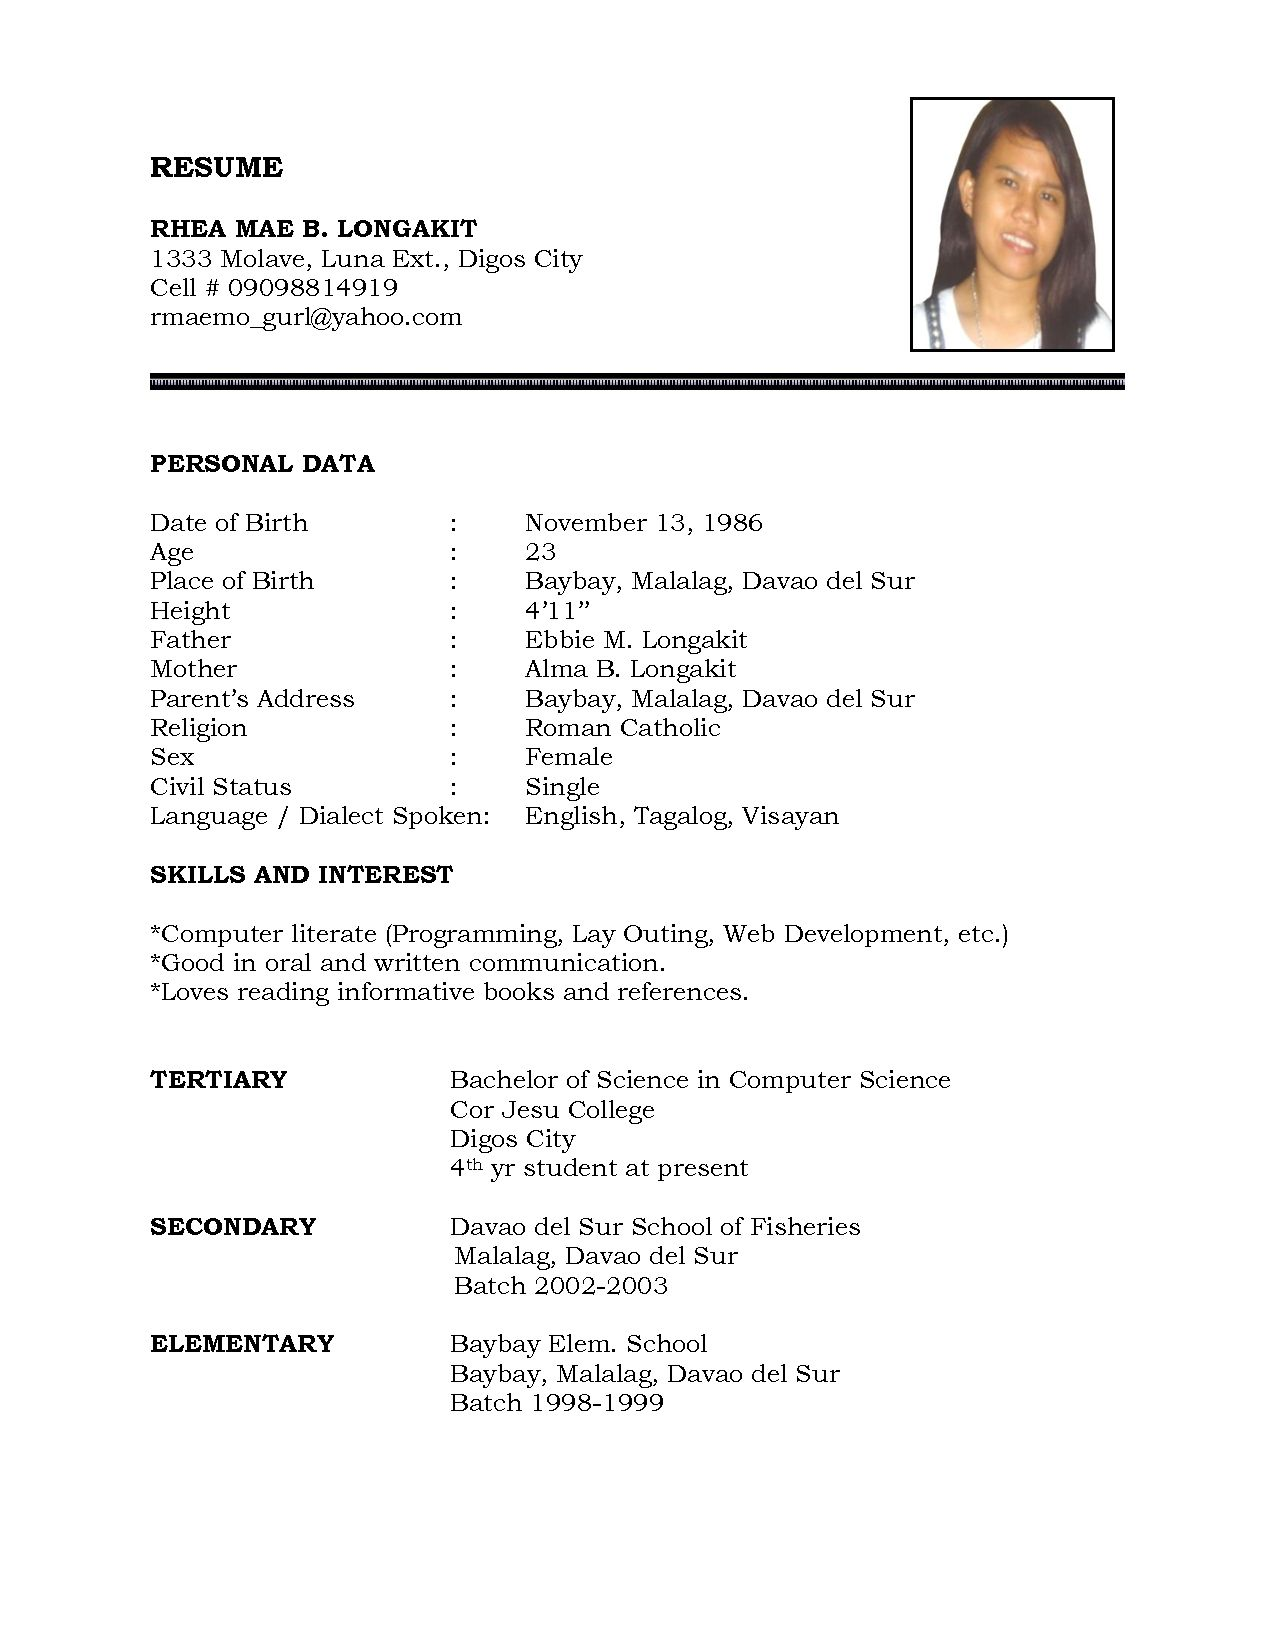 resume sample simple de9e2a60f the simple format of resume for job resume pinterest job